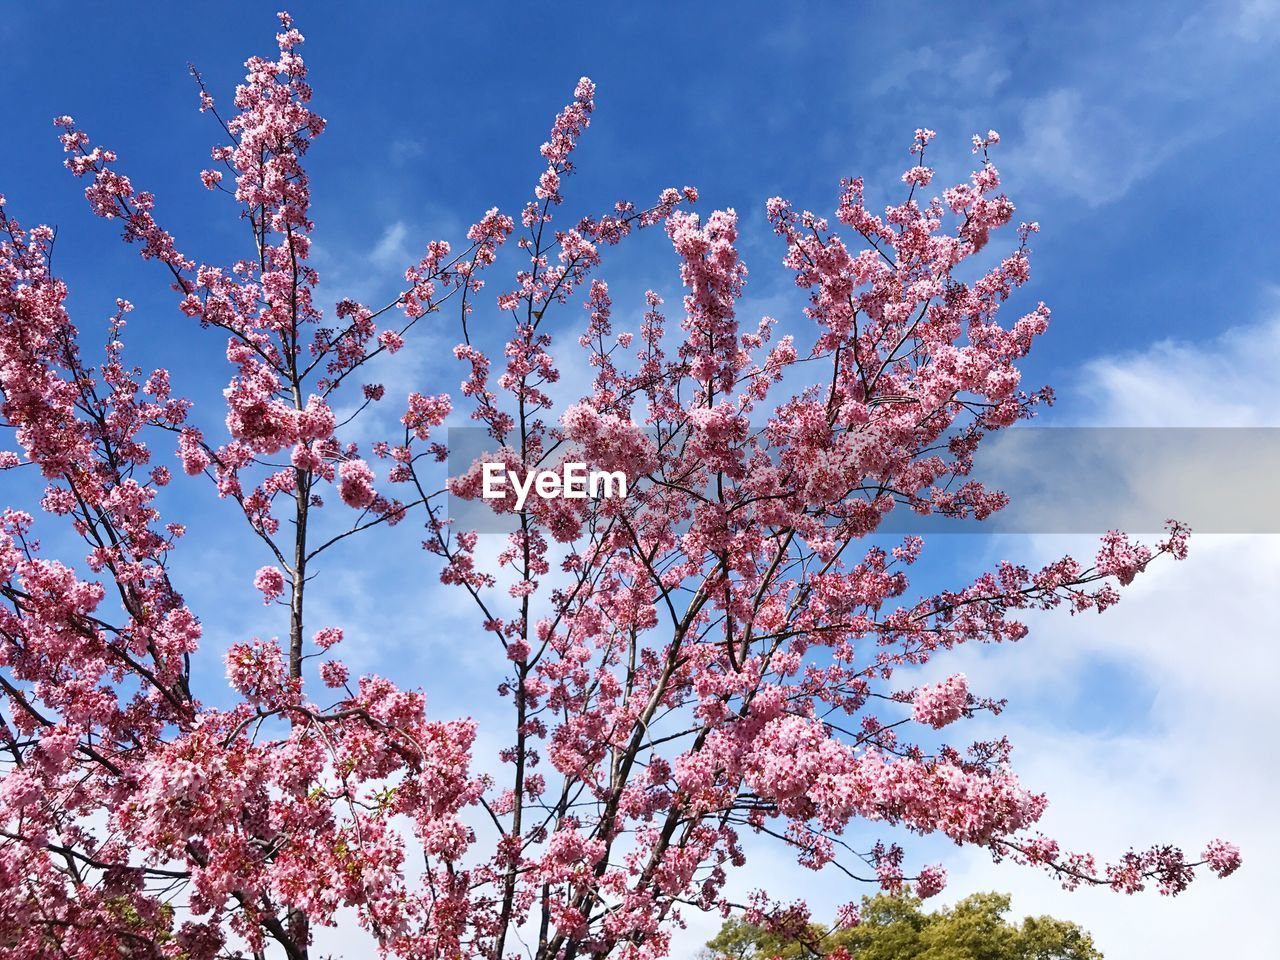 flower, tree, beauty in nature, blossom, low angle view, nature, fragility, branch, pink color, growth, sky, springtime, day, freshness, no people, outdoors, cloud - sky, tranquility, plum blossom, blooming, scenics, close-up, flower head